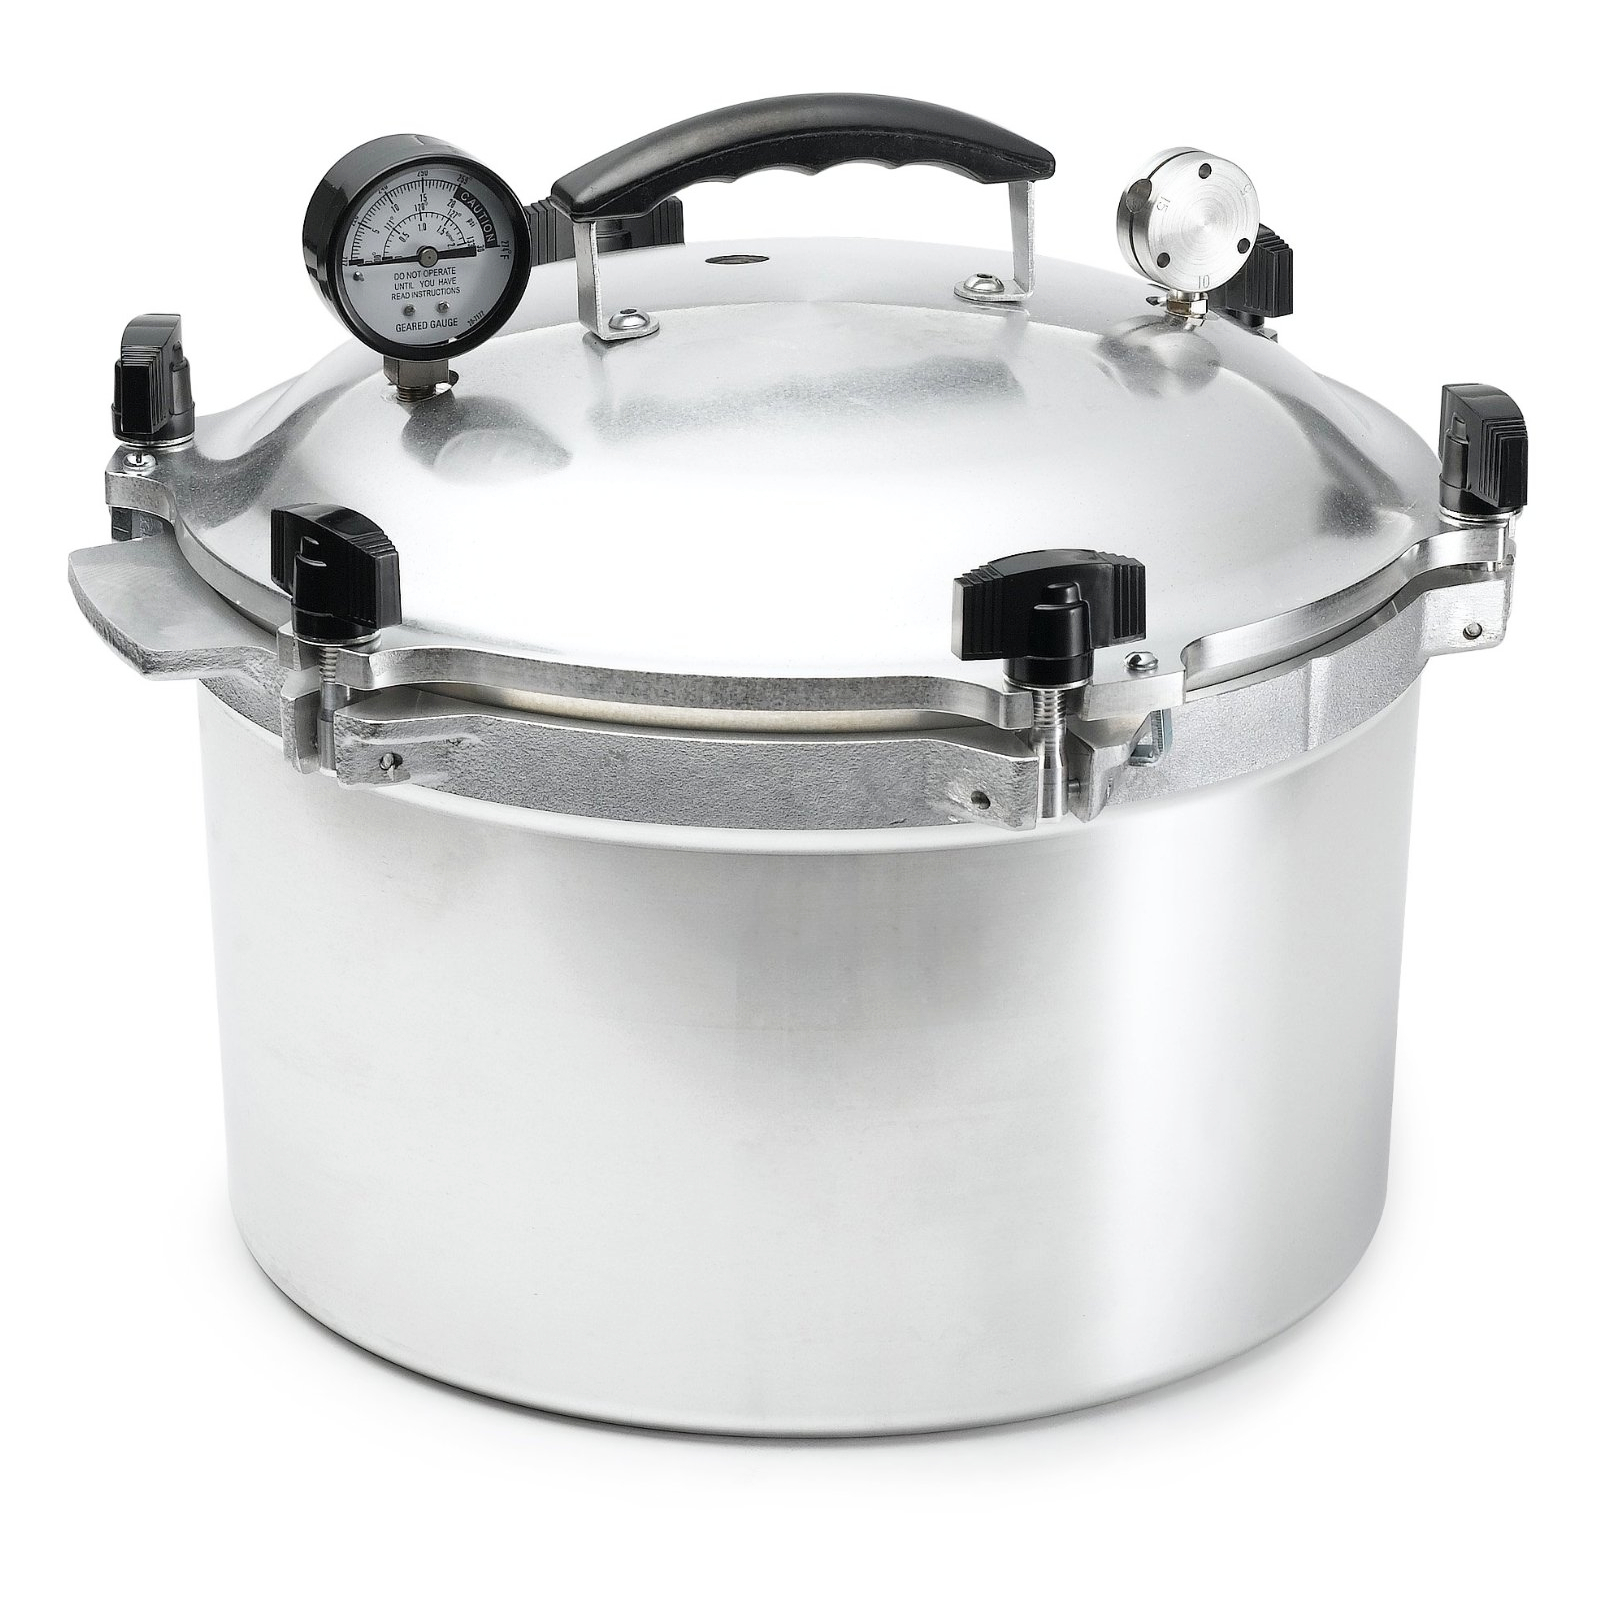 All American 15.5 Quart Metal Pressure Cooker and Canner